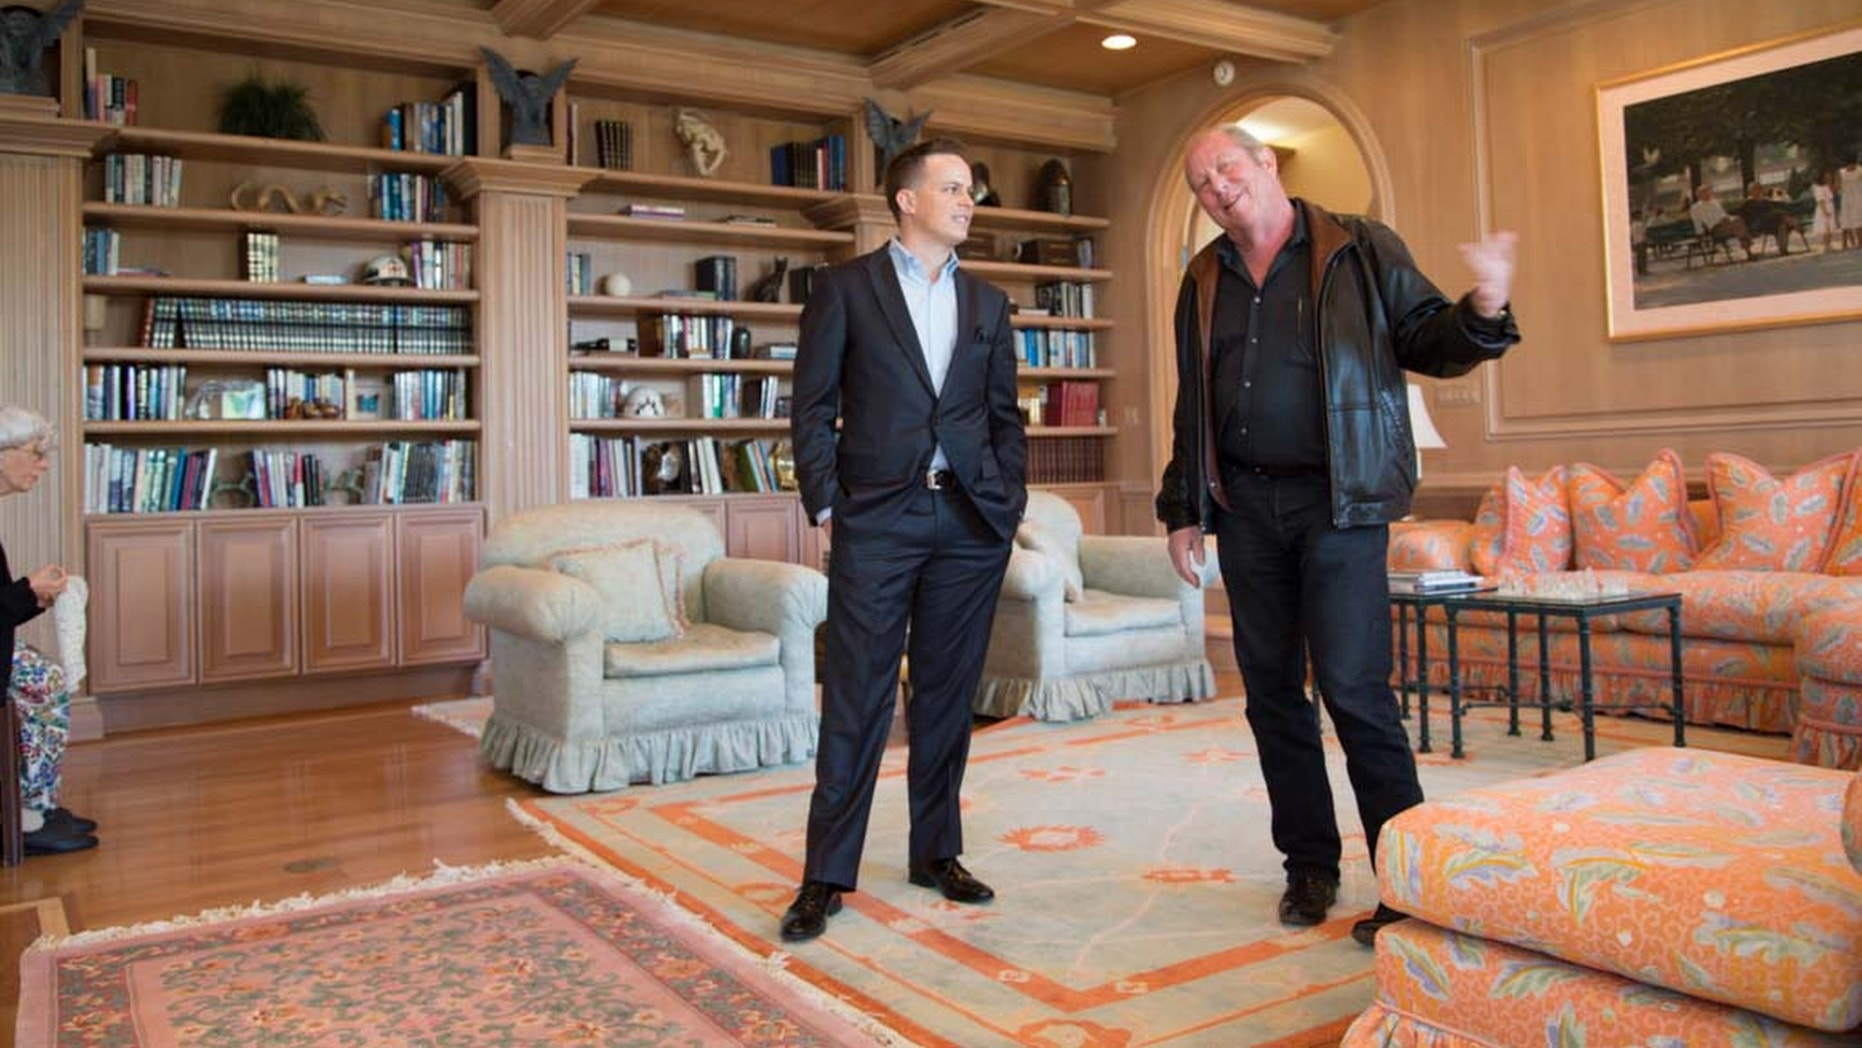 Dec. 12, 2013: In this photo, Jack Sommer, right, and his real estate agent Craig Tann stand in the library of Sommers'; home in the Spanish Trail neighborhood of Las Vegas.